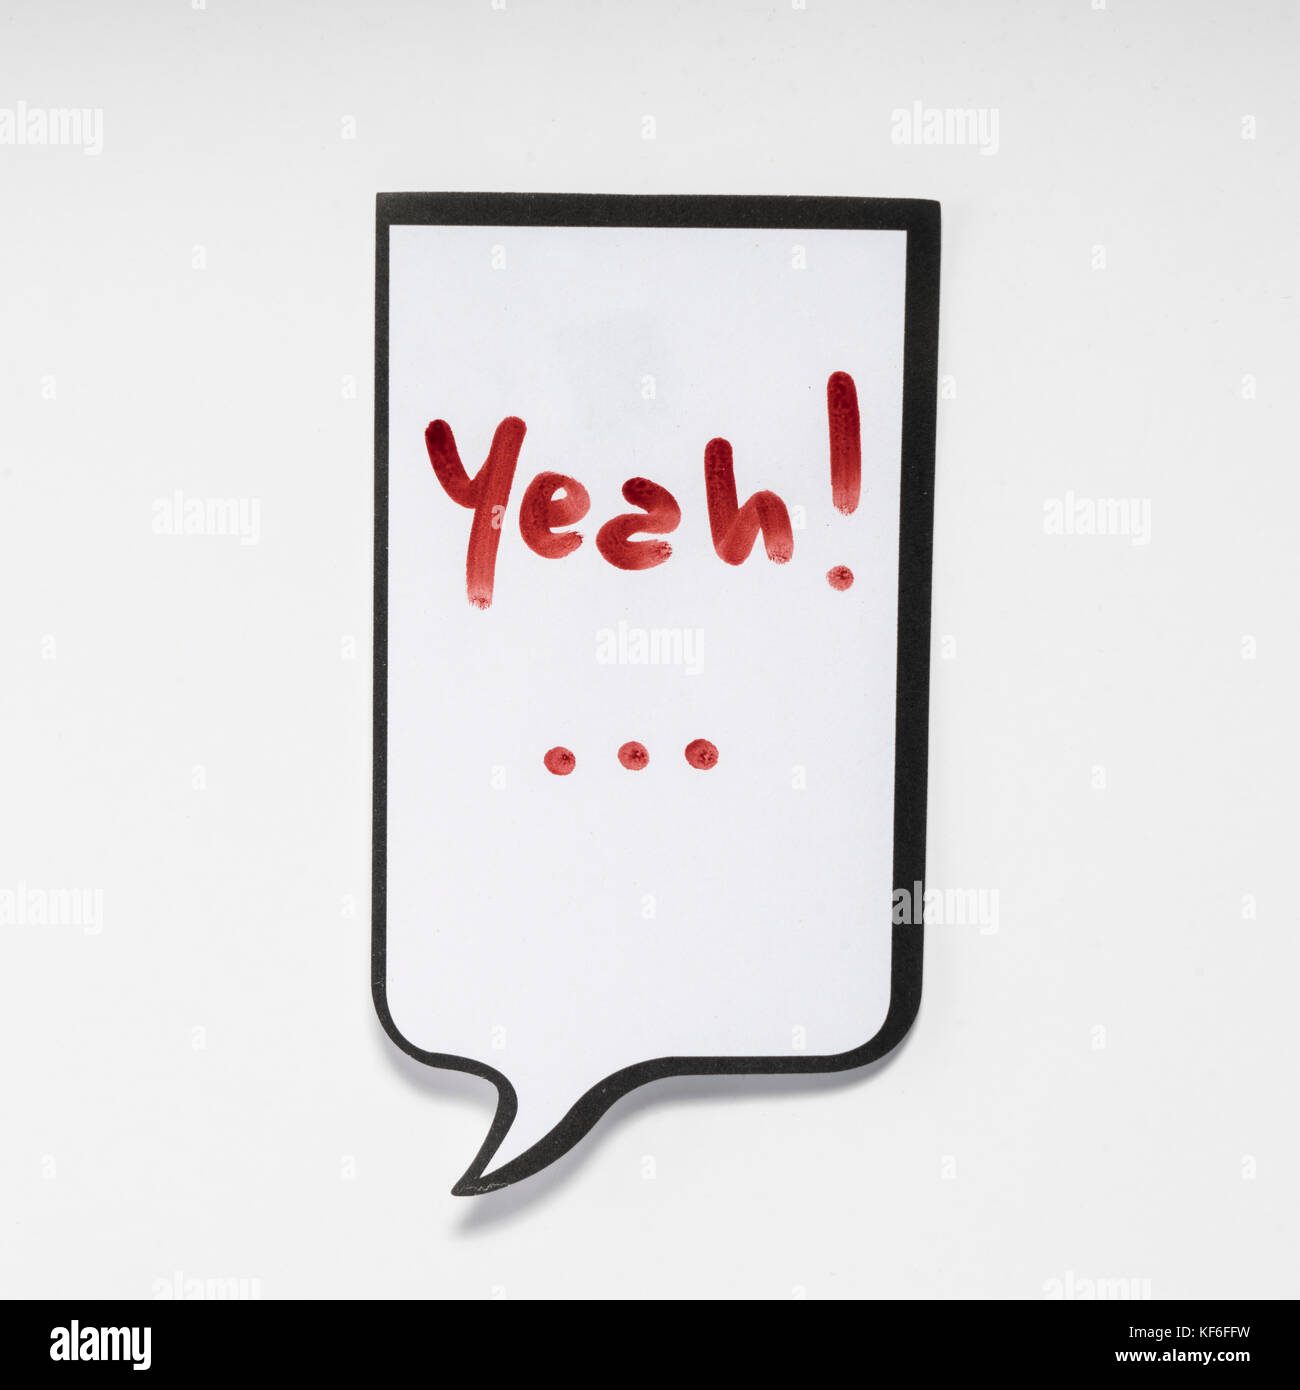 a white memo pad with the shape of a comic with the inscription 'yeah' - Stock Image